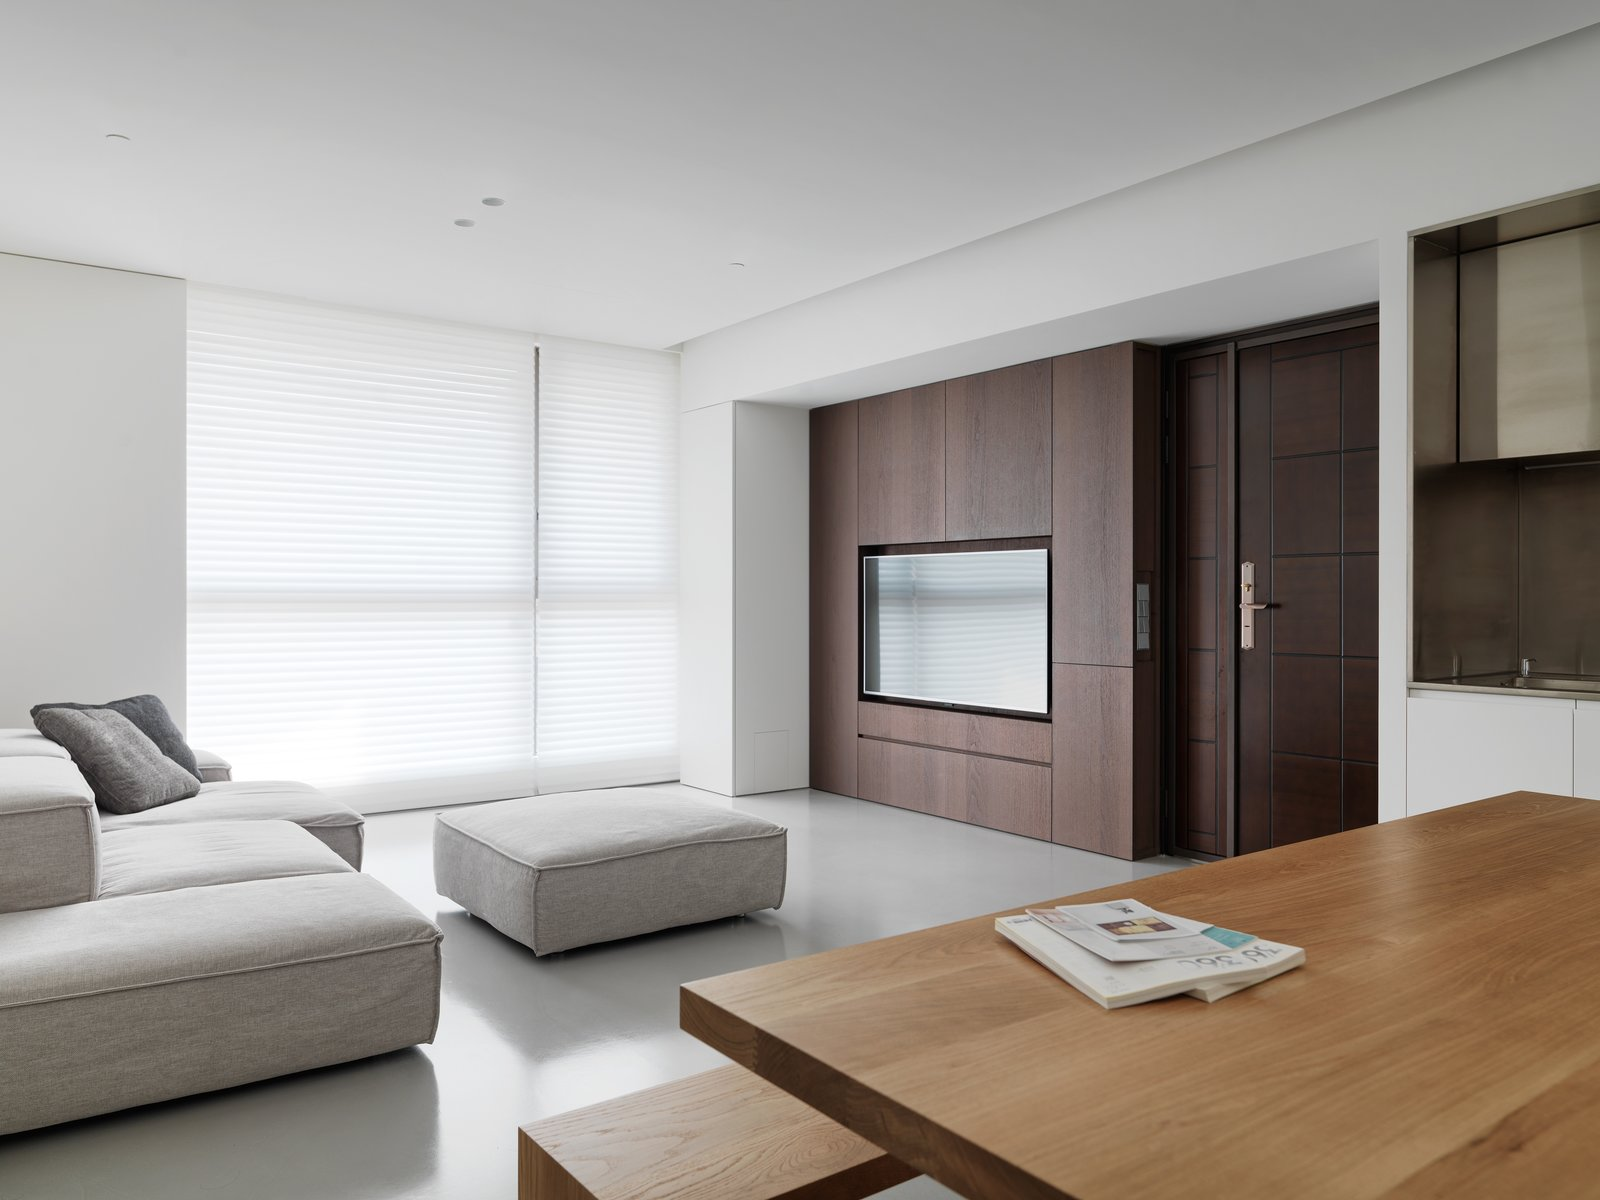 Wood and fabric are selected to punctuate or merge with the space.